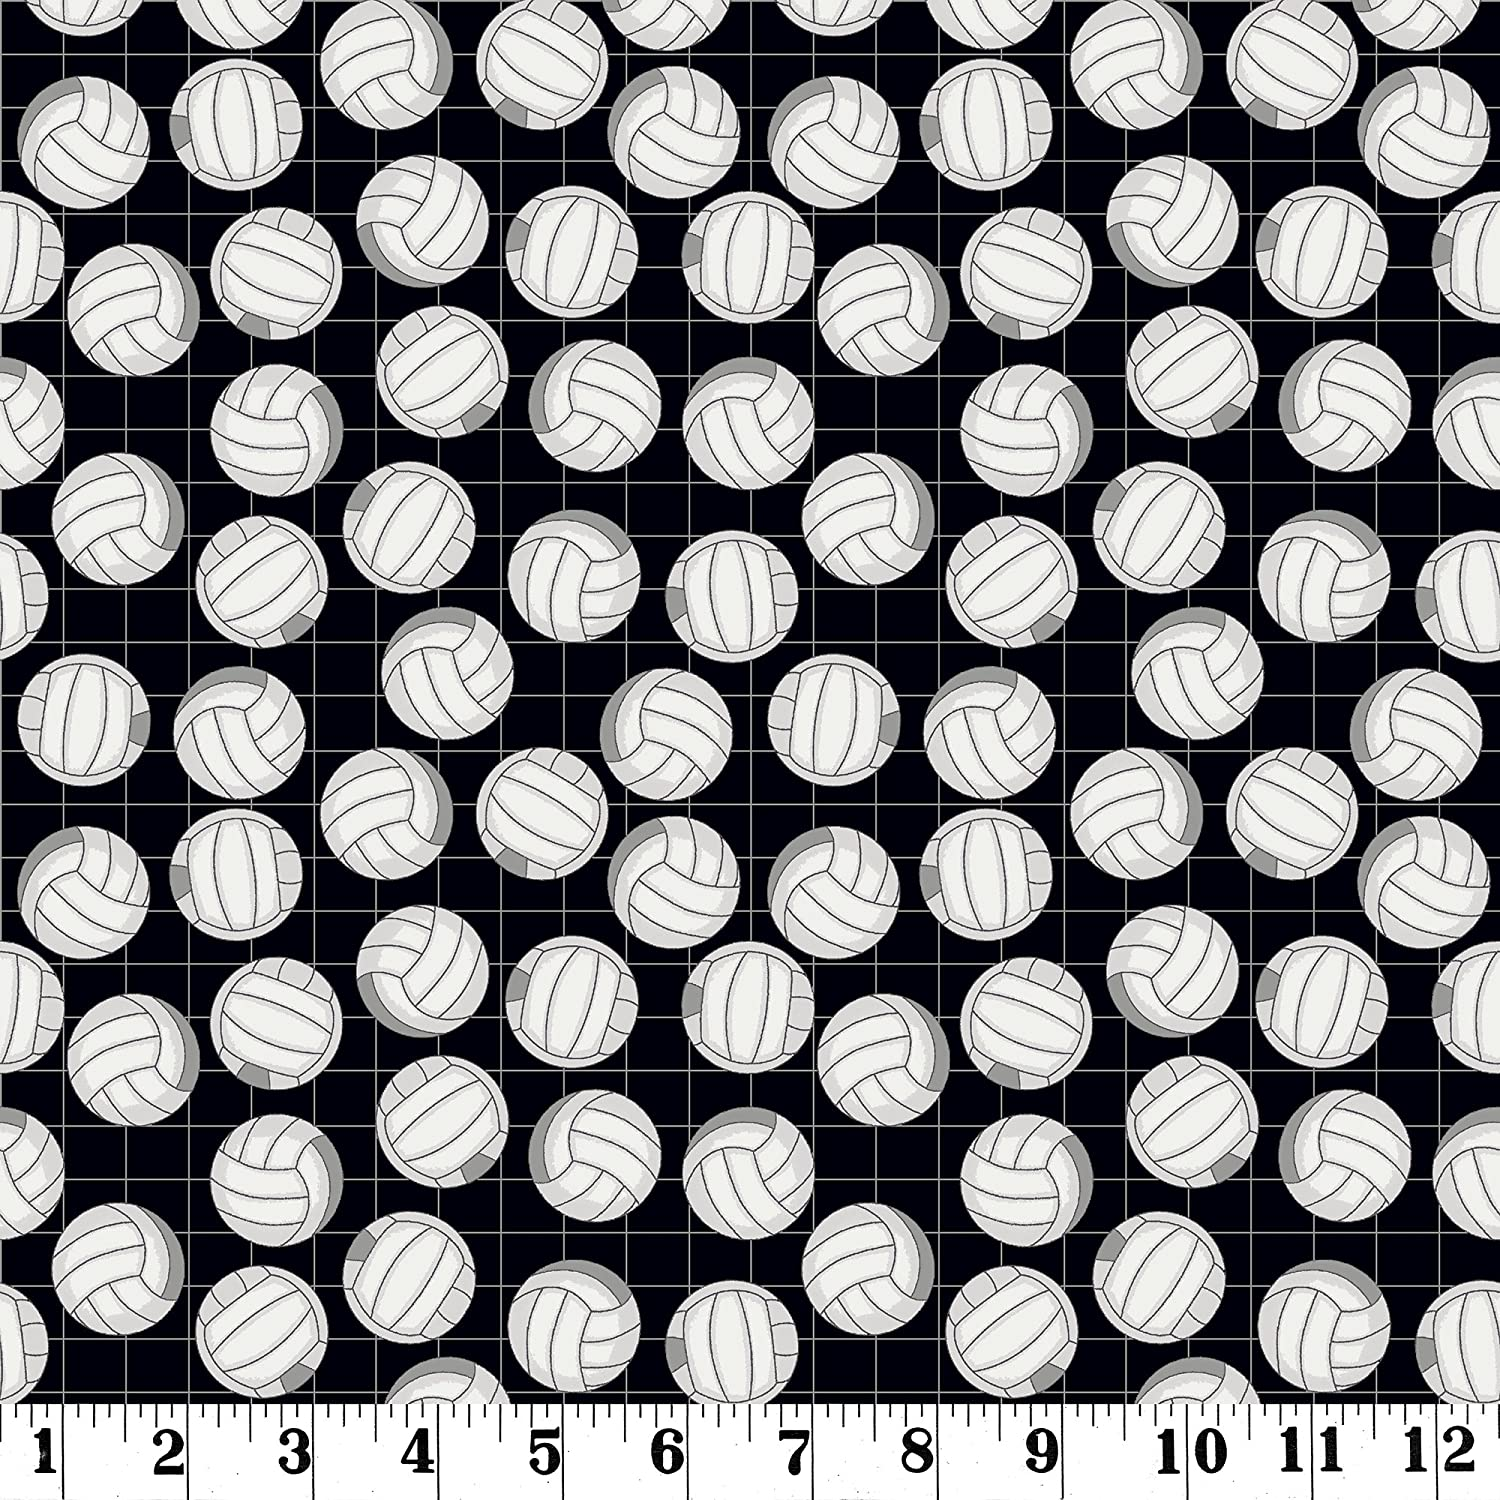 18 x 21 Black and White Volleyball Fat Quarter